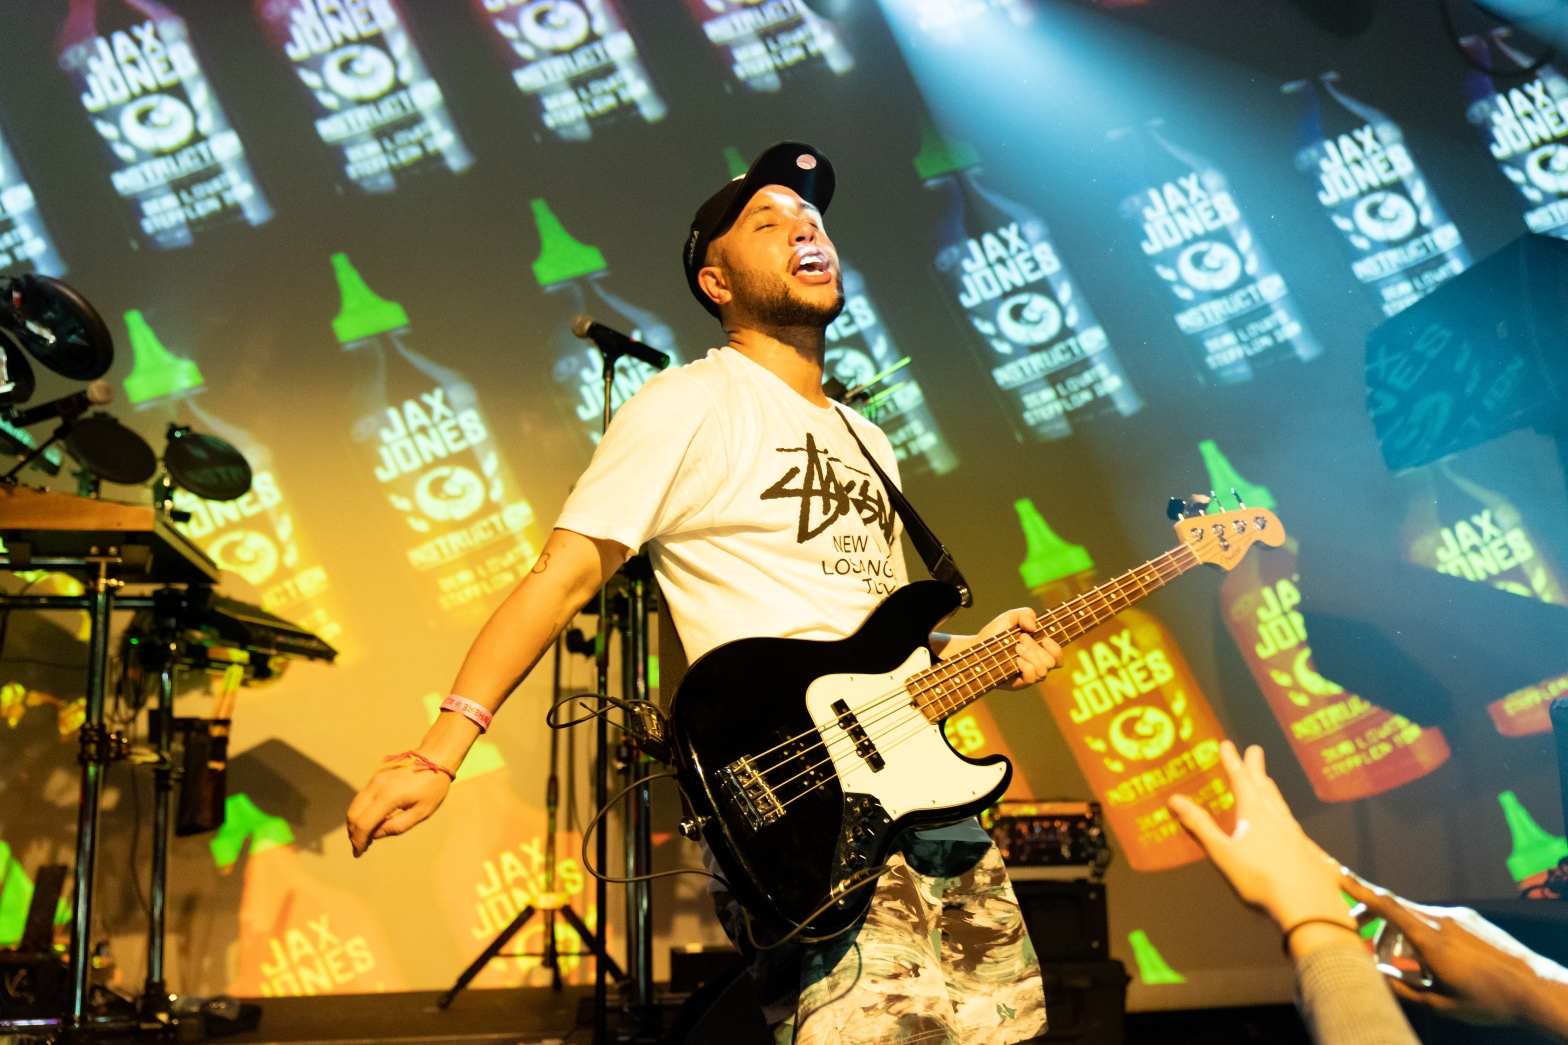 Photo of Jax Jones performing live at Elsewhere in Brooklyn on April 20, 2019